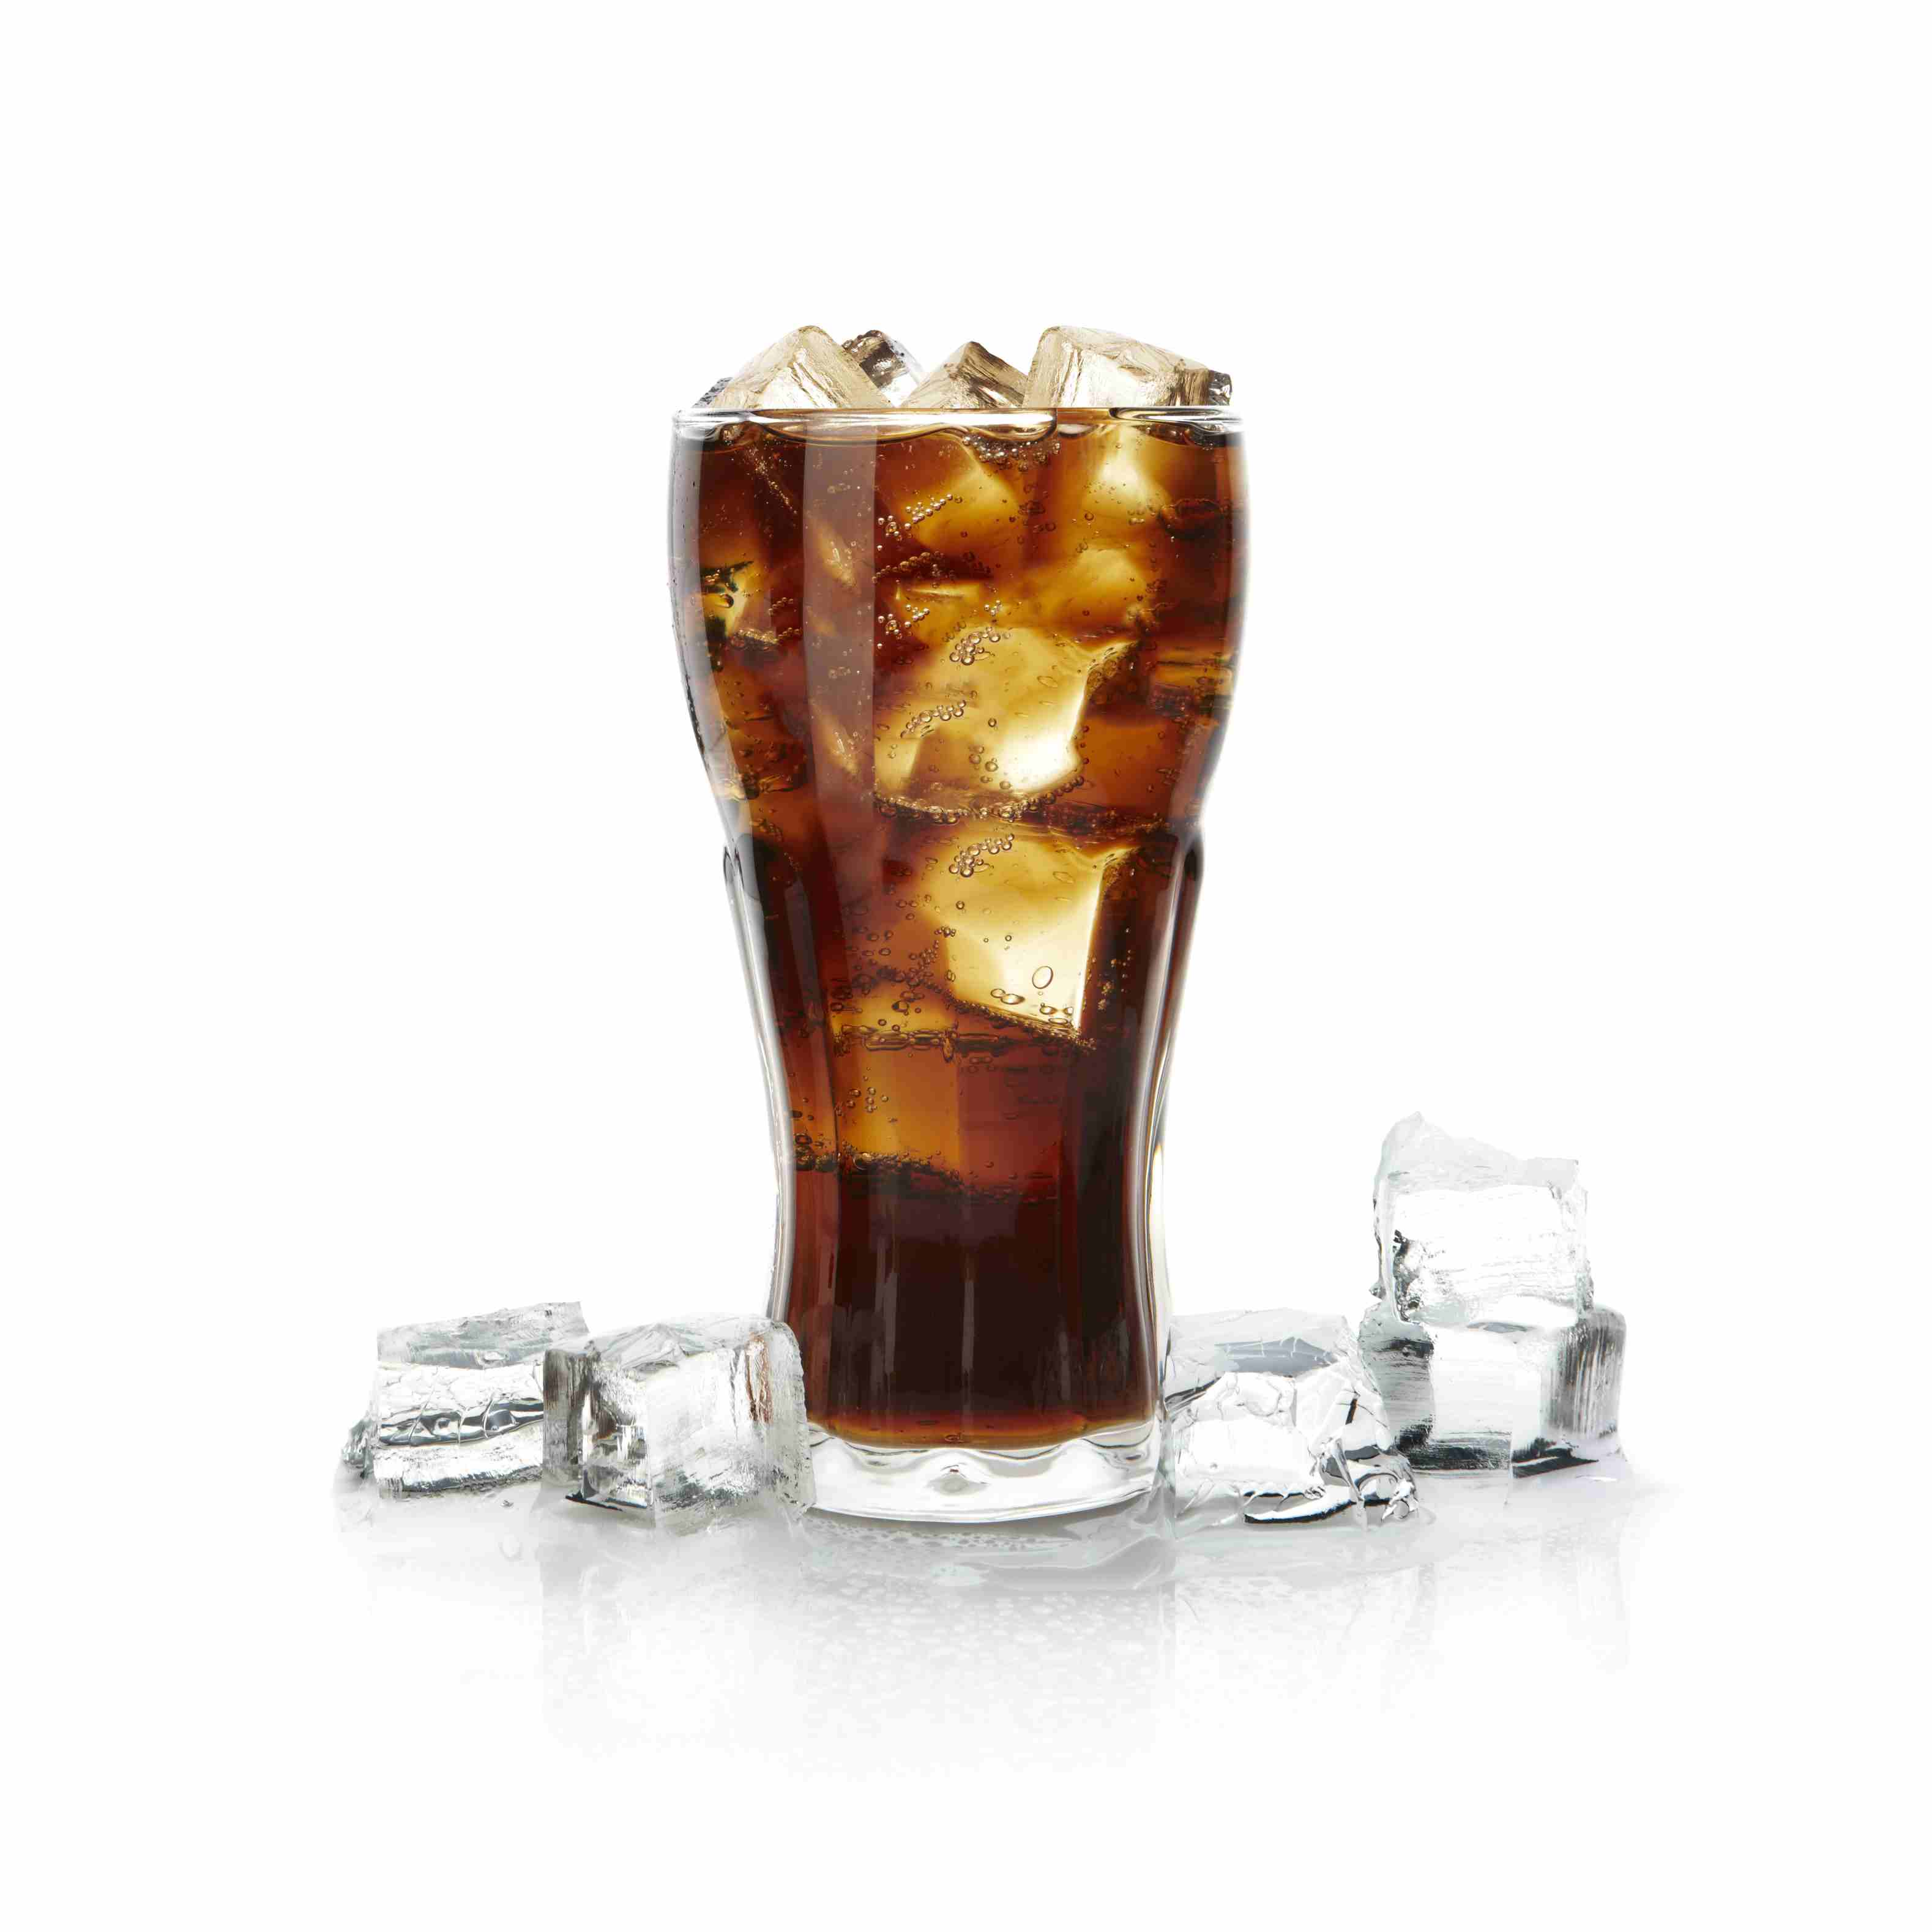 Cola and other soft drinks often contain brominated vegetable oil.